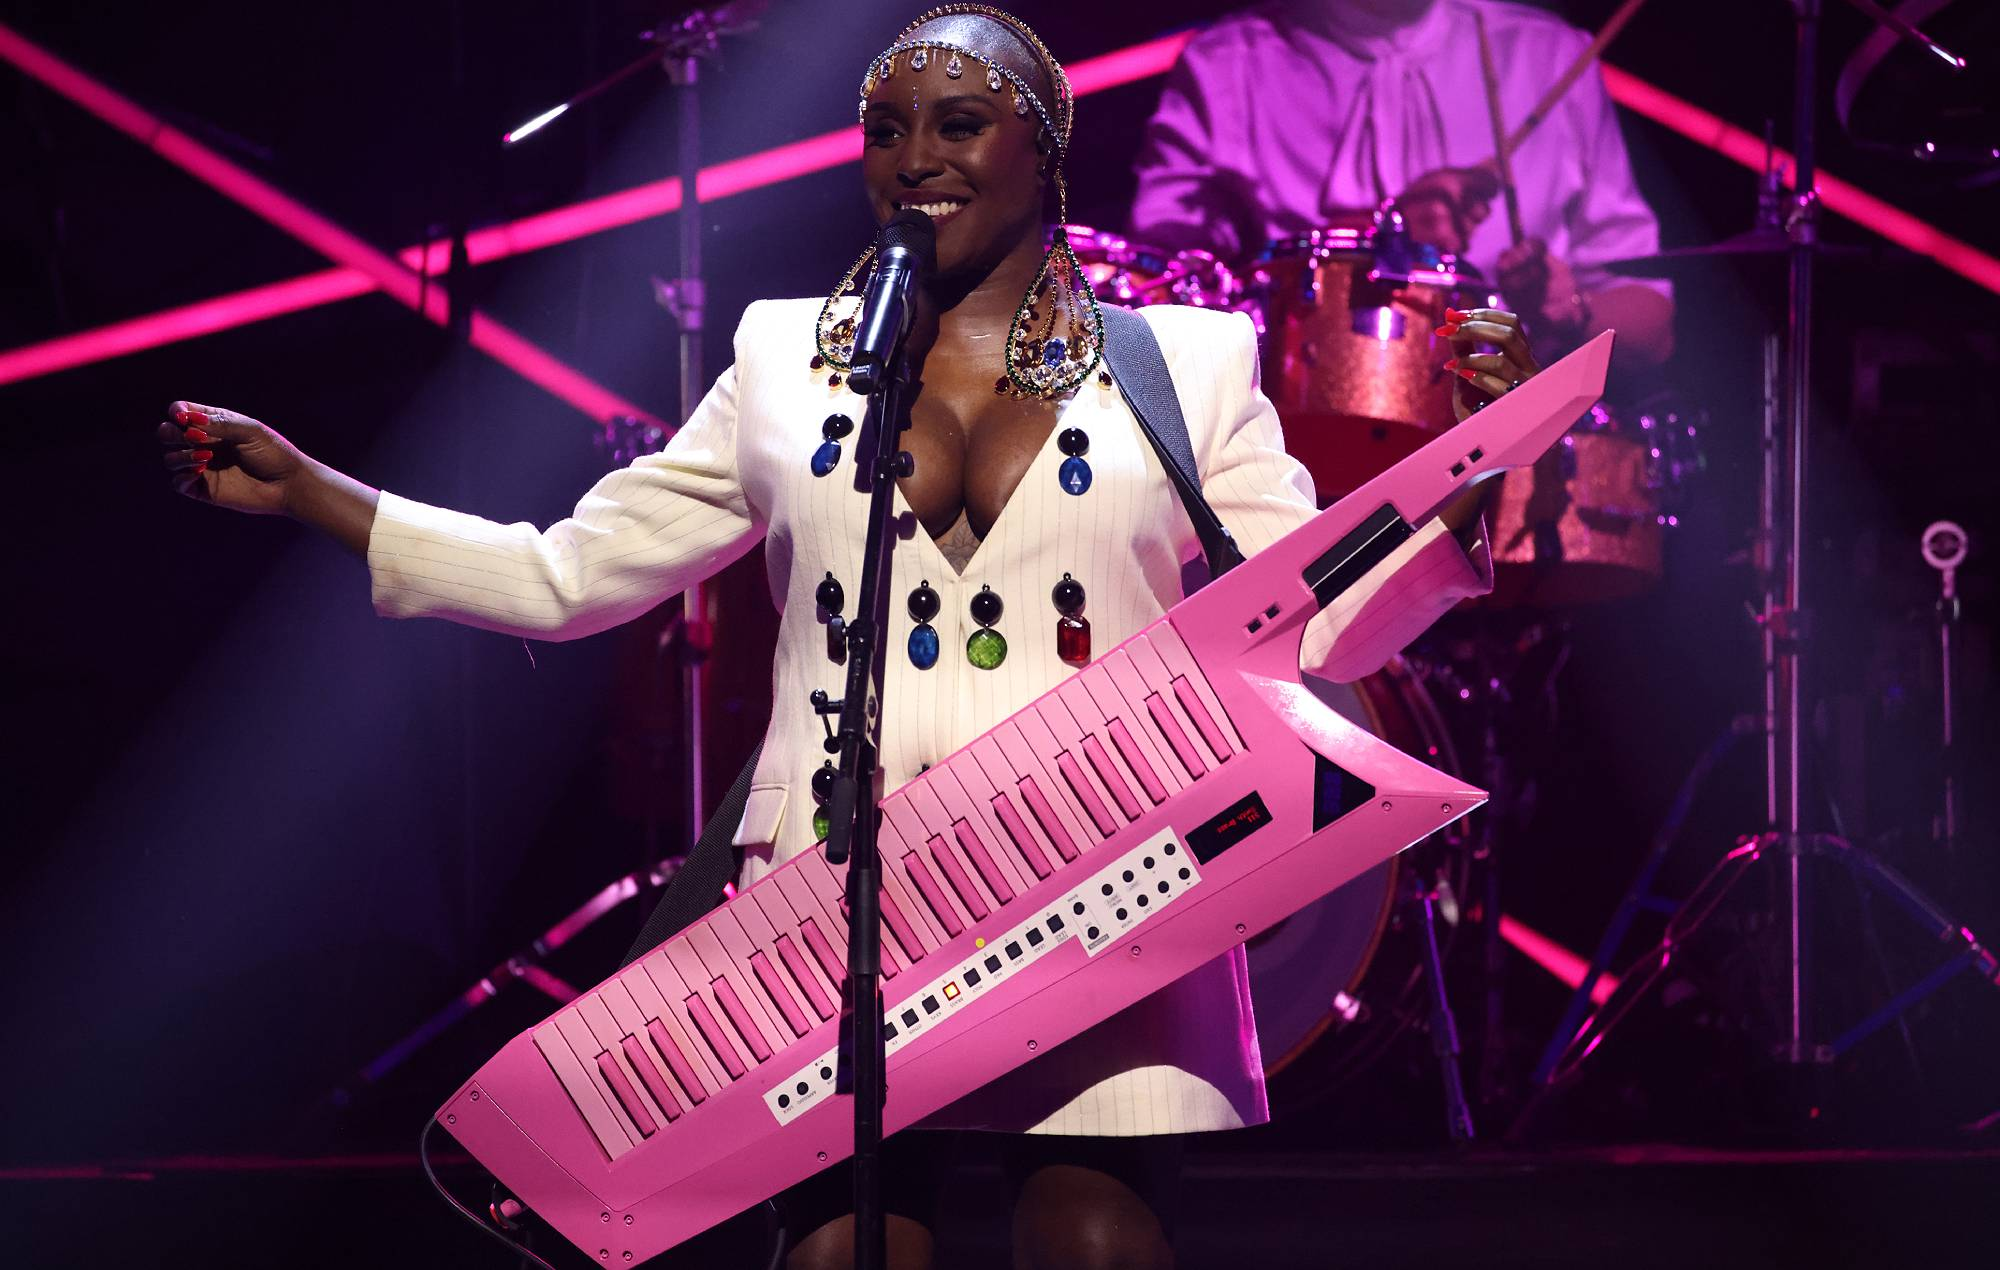 Laura Mvula onstage during the Hyundai Mercury Music Prize 2021 at the Eventim Apollo, Hammersmith on September 09, 2021 in London, England. (Photo by JMEnternational/Getty Images)